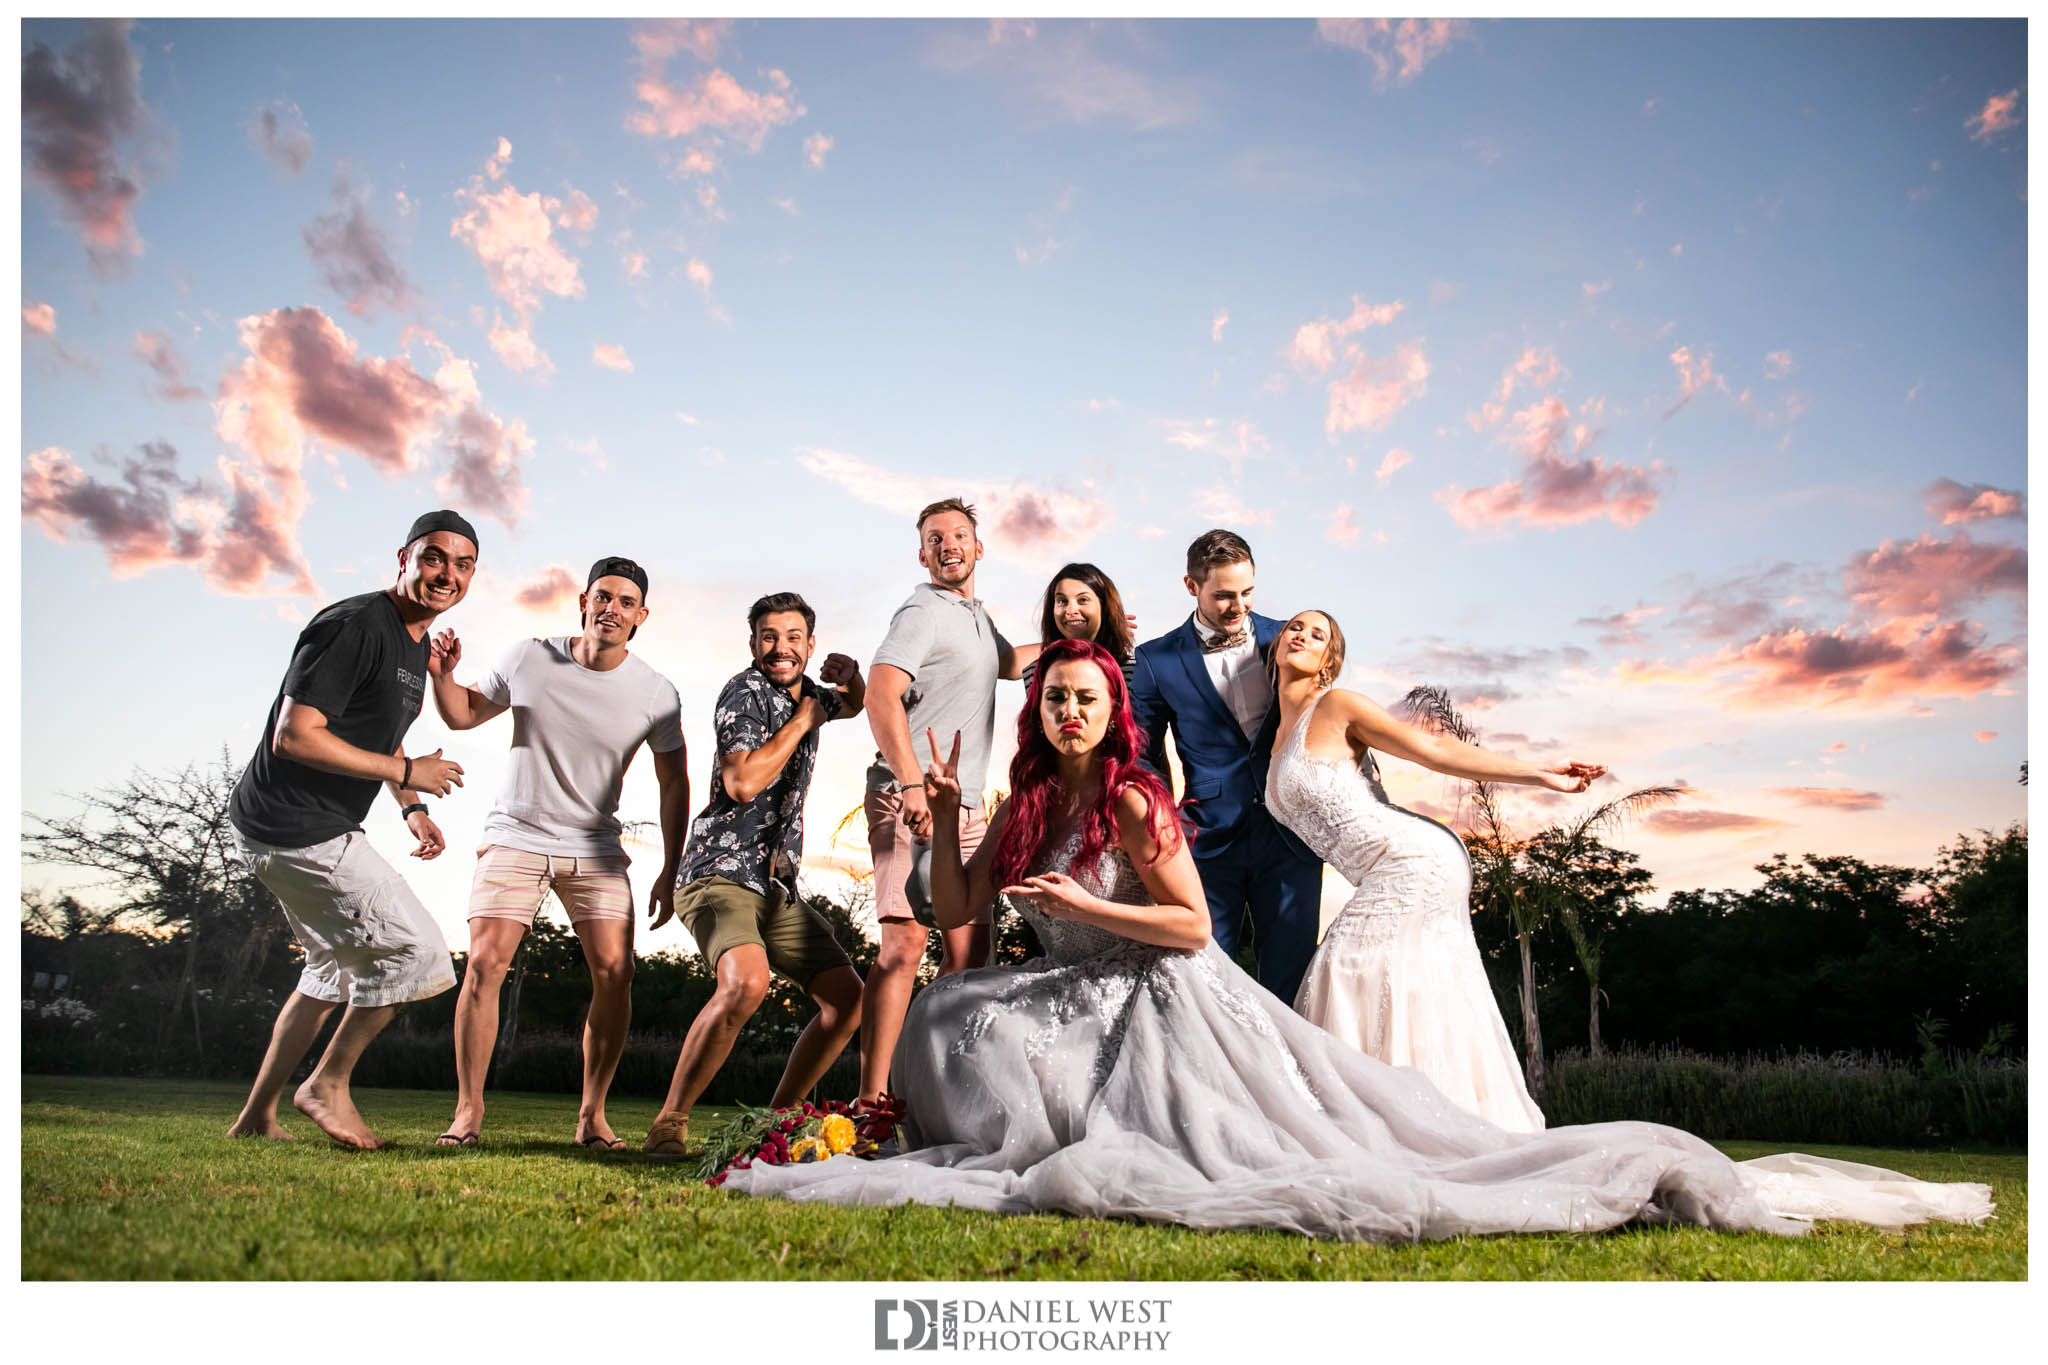 De-Harte-Venue-danielwest-wedding-photog